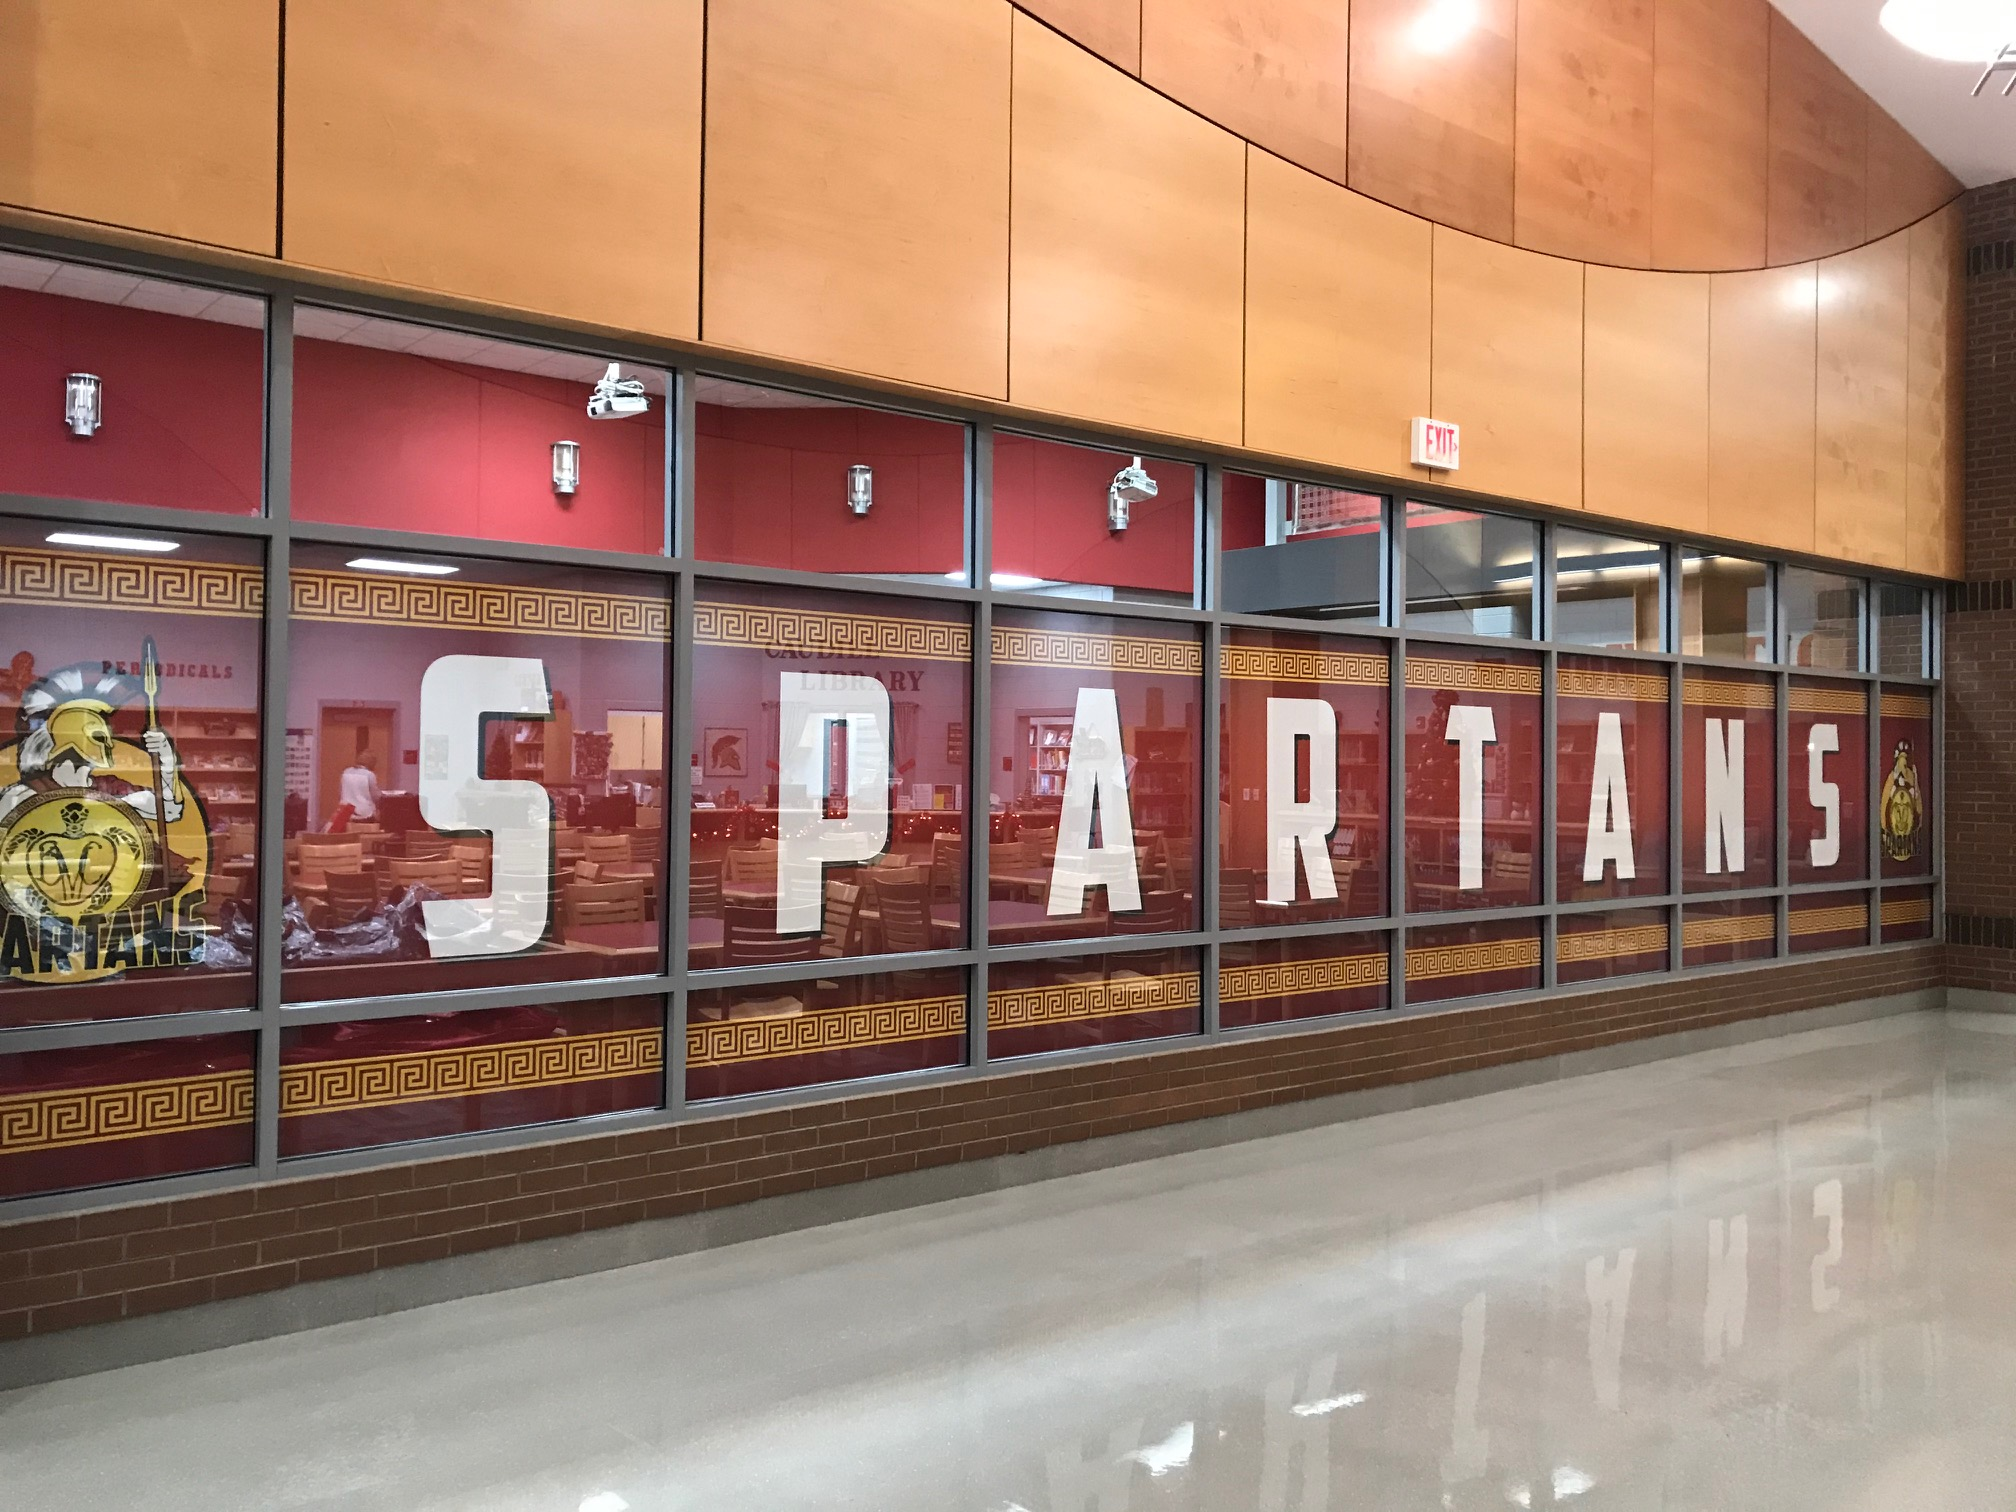 photo of Spartans written on hallway wall